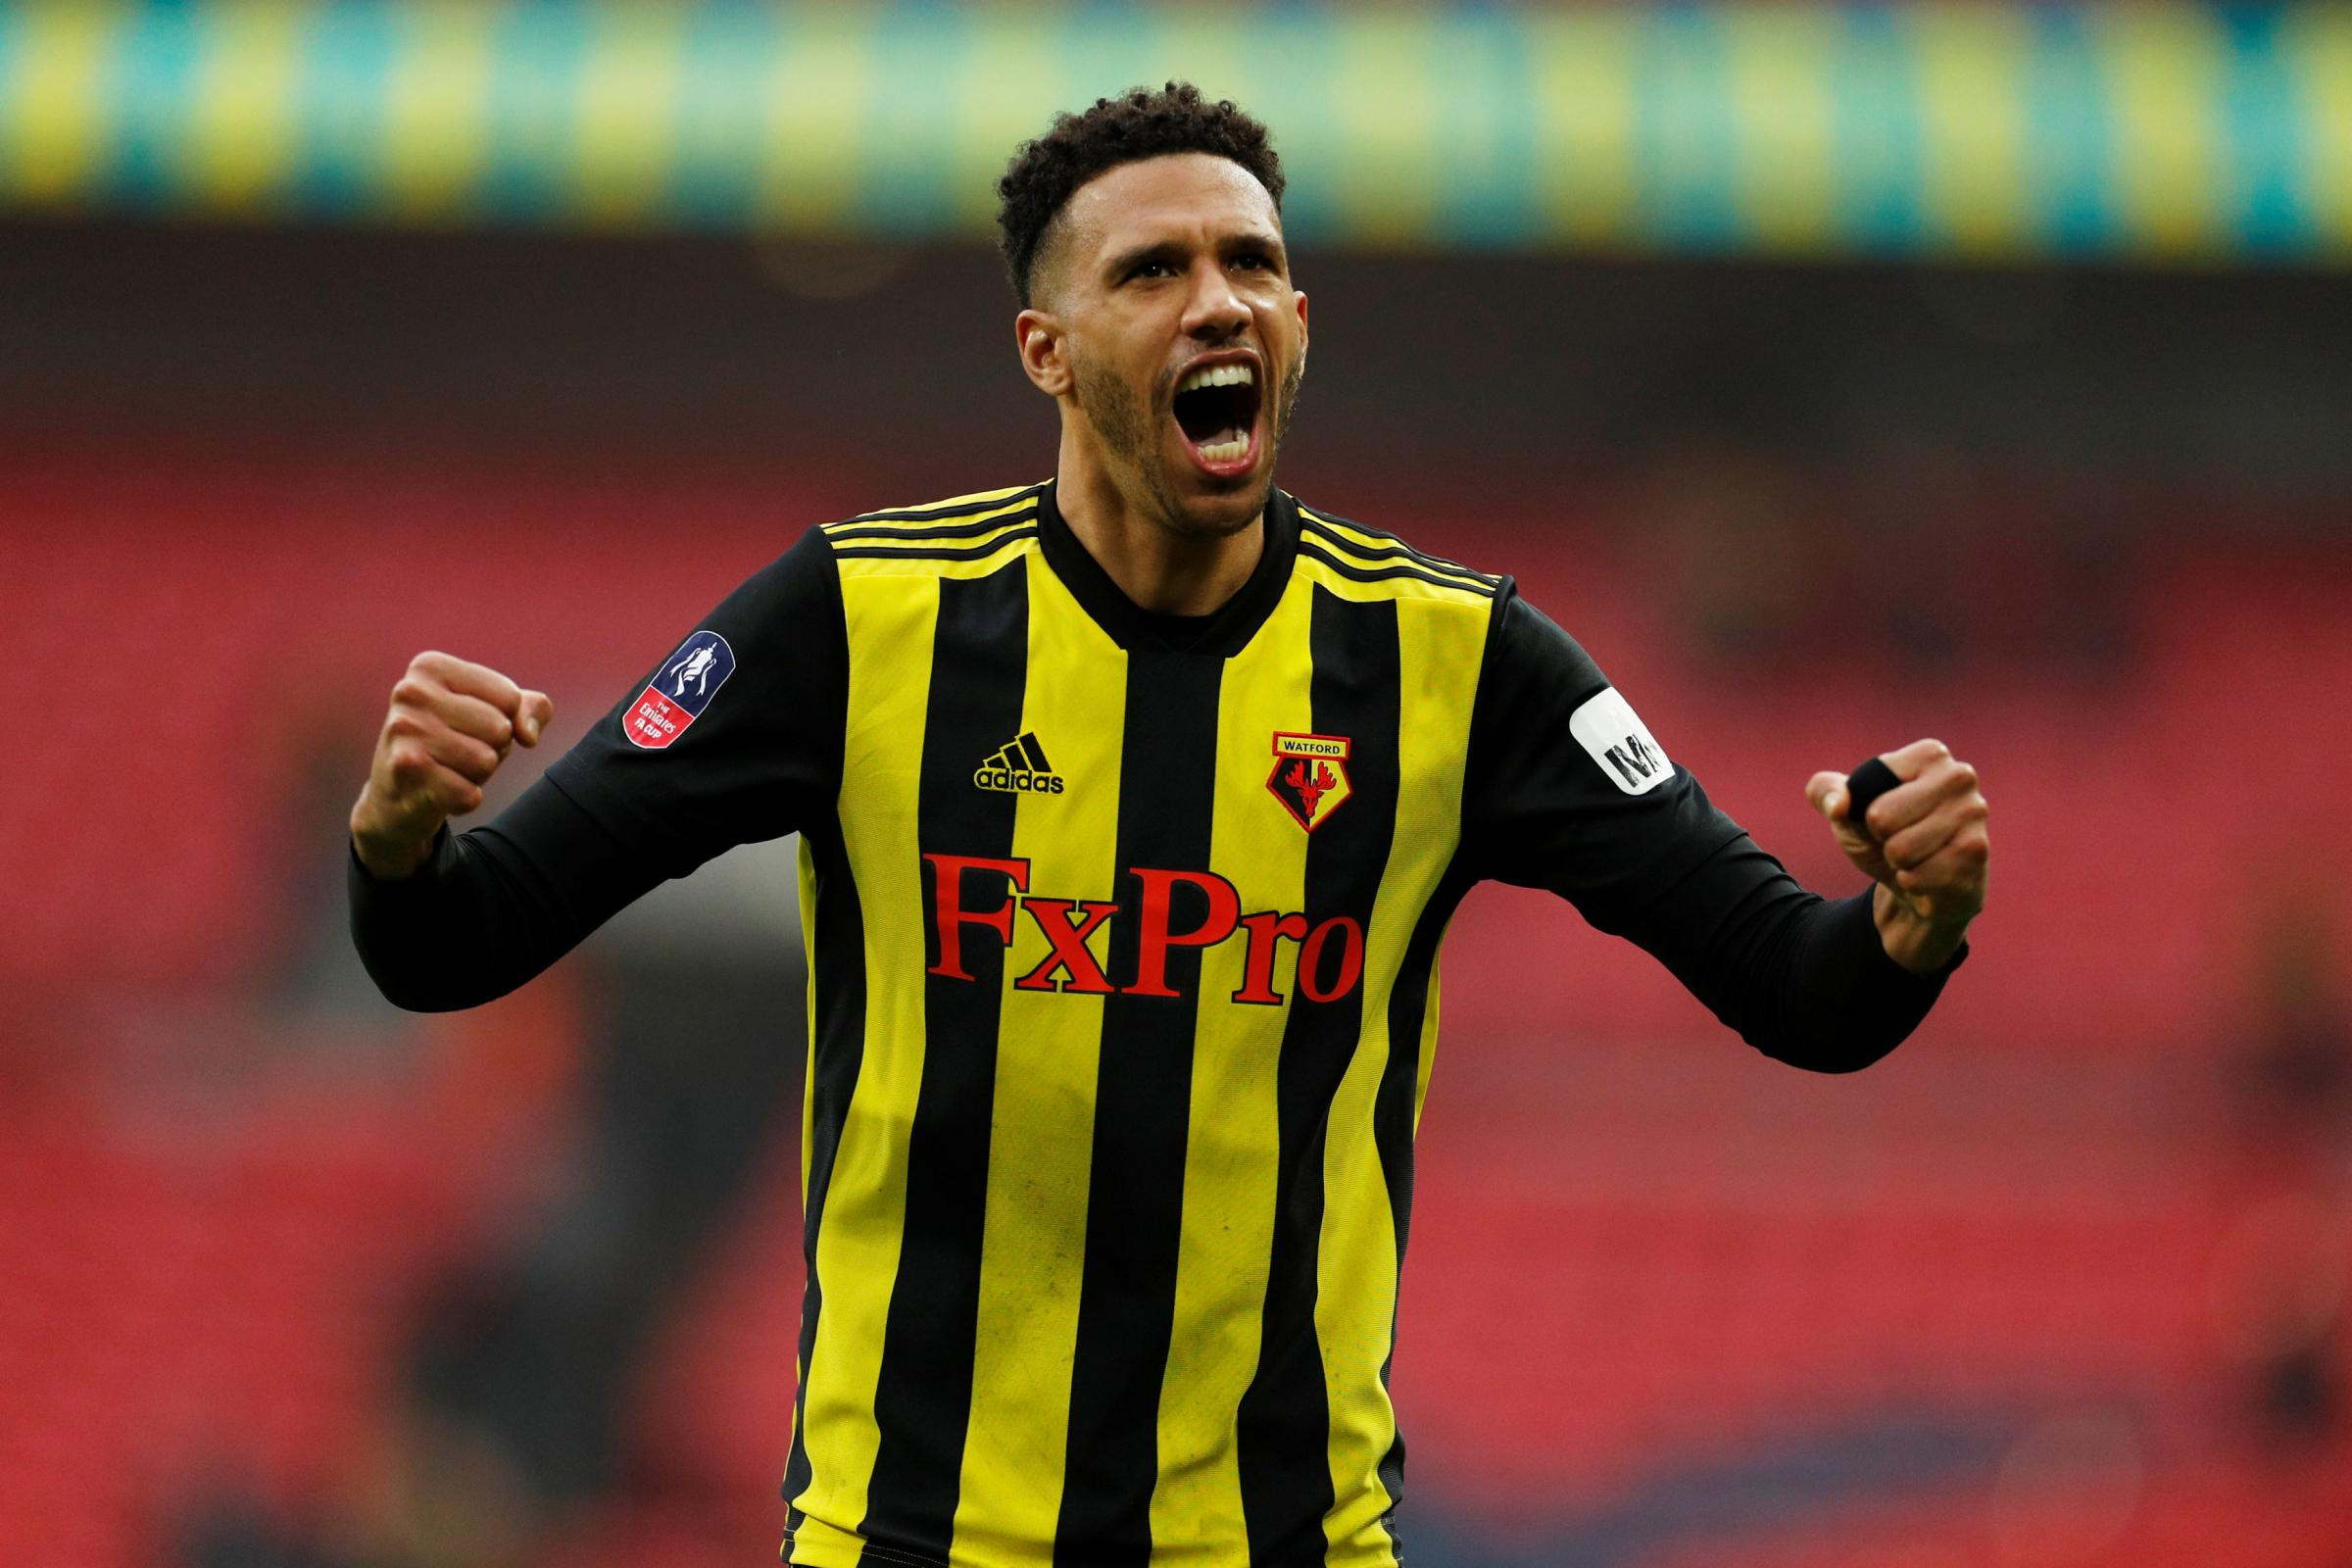 Capoue calls on 12th man to help the Hornets at Wembley